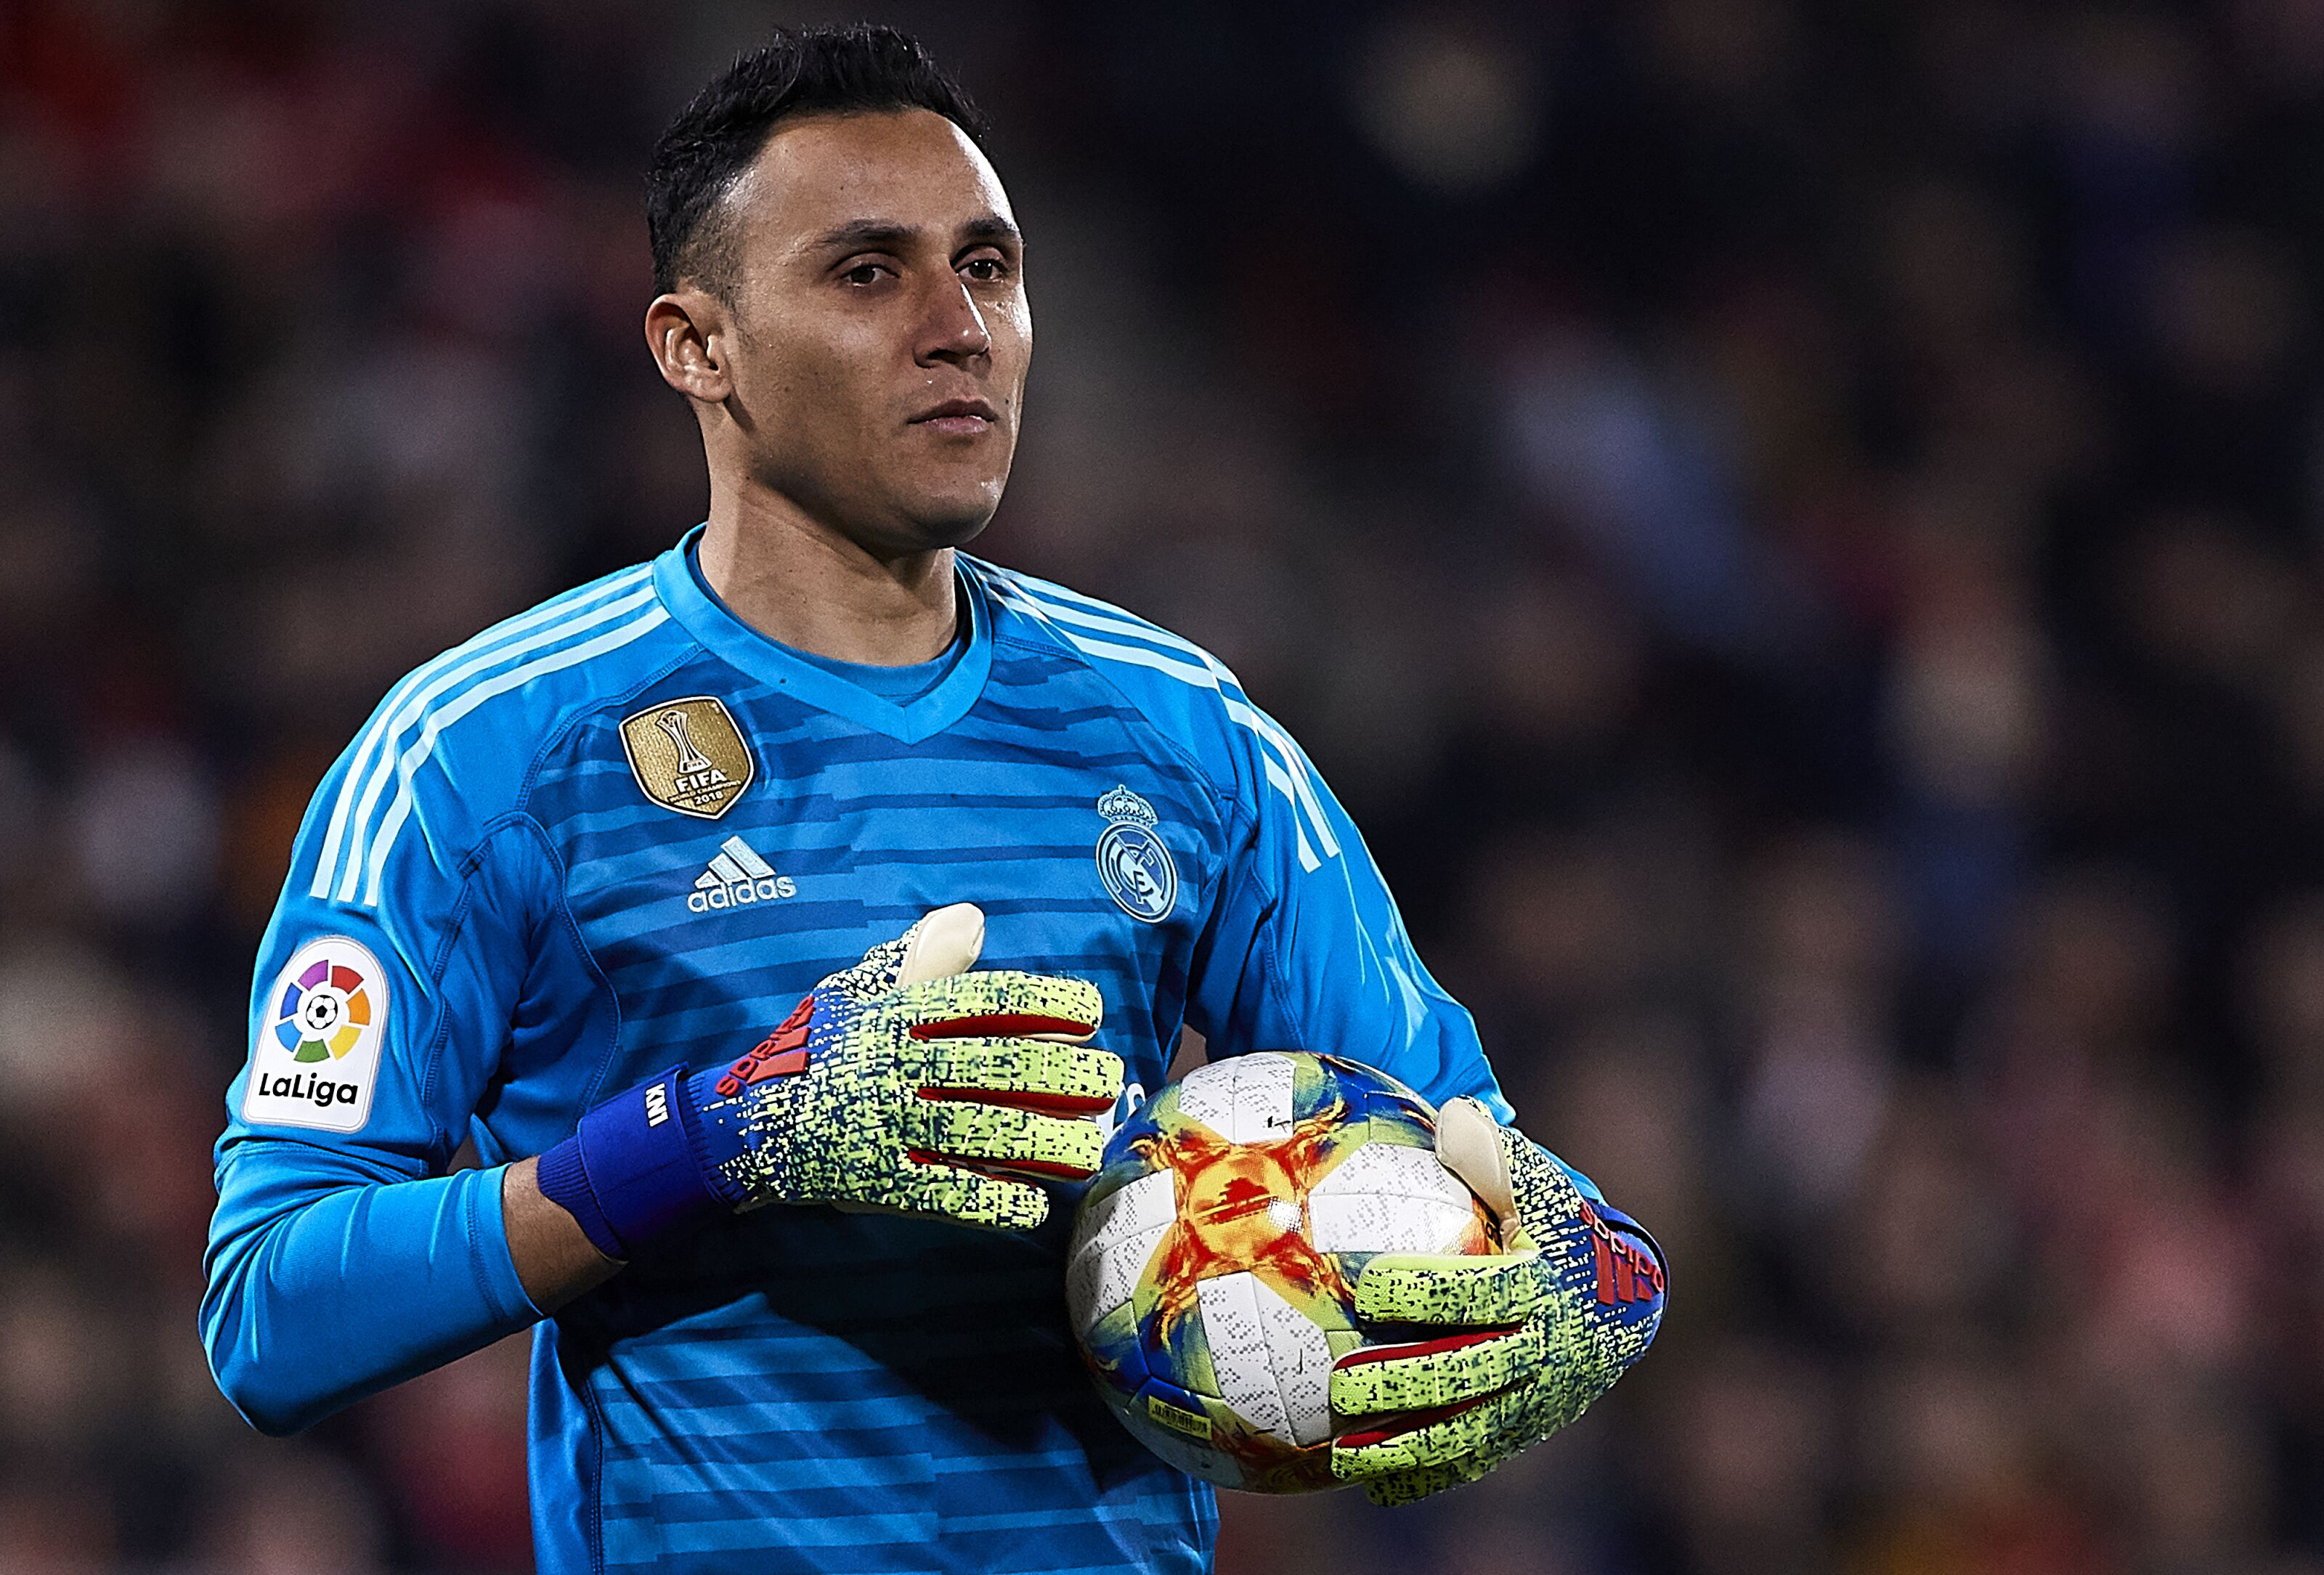 PSG to move for Real Madrid goalkeeper to replace Gianluigi Buffon